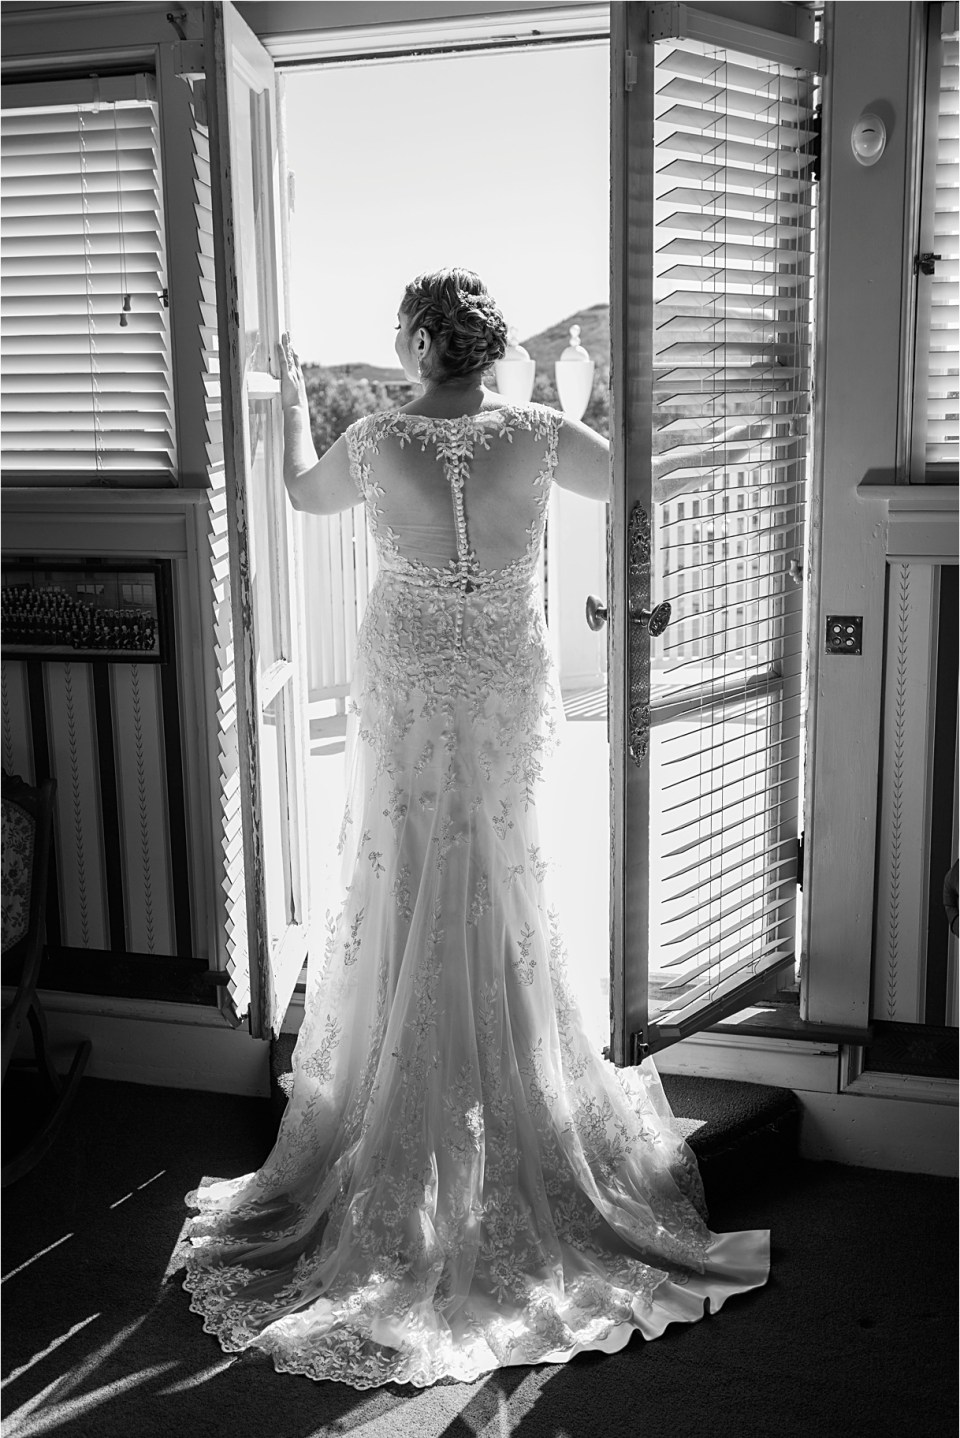 Bride getting ready at Z Mansion, Tucson, Arizona.